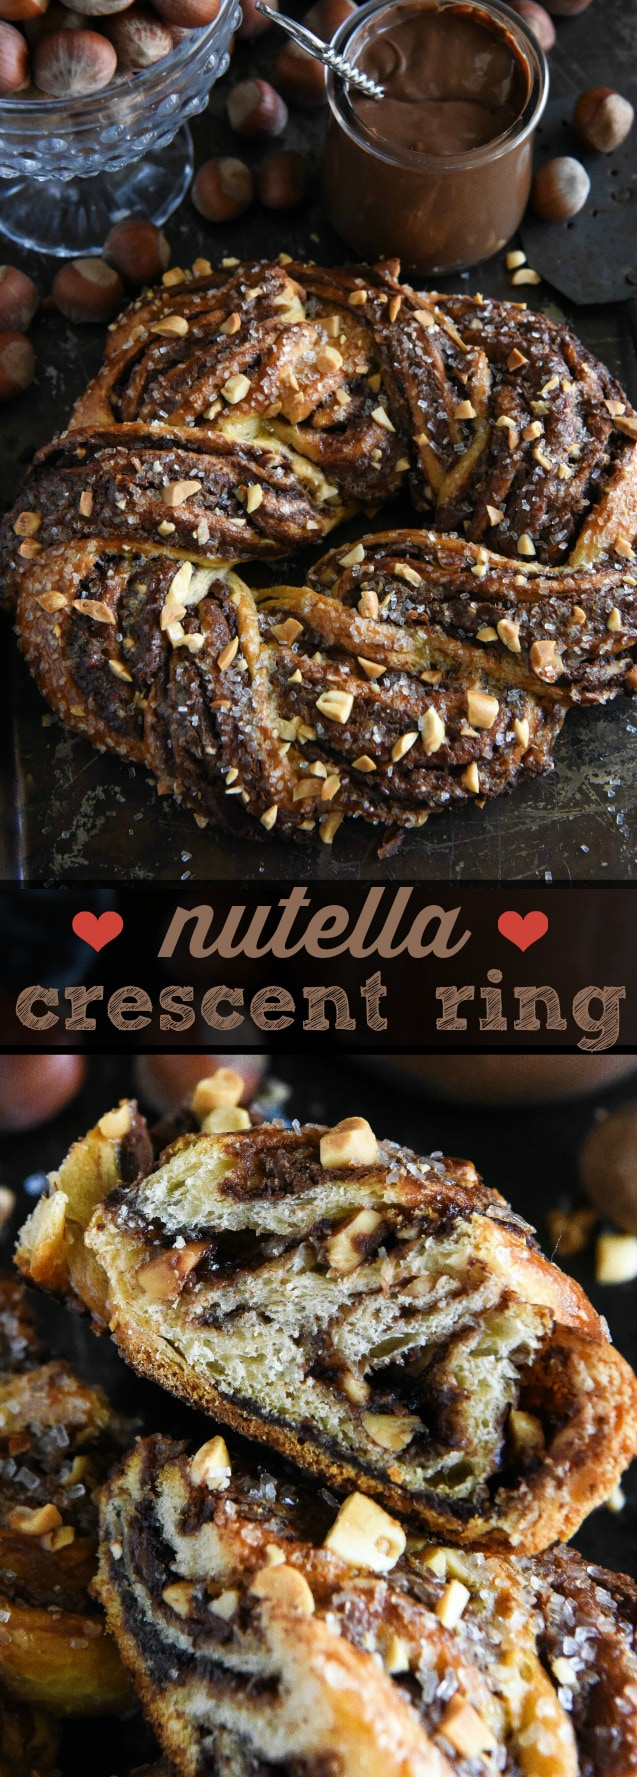 Nutella Crescent Ring: this recipe is so easy and incredibly delicious! Perfect for breakfast or dessert! #breakfast #dessert #nutella #madeathome